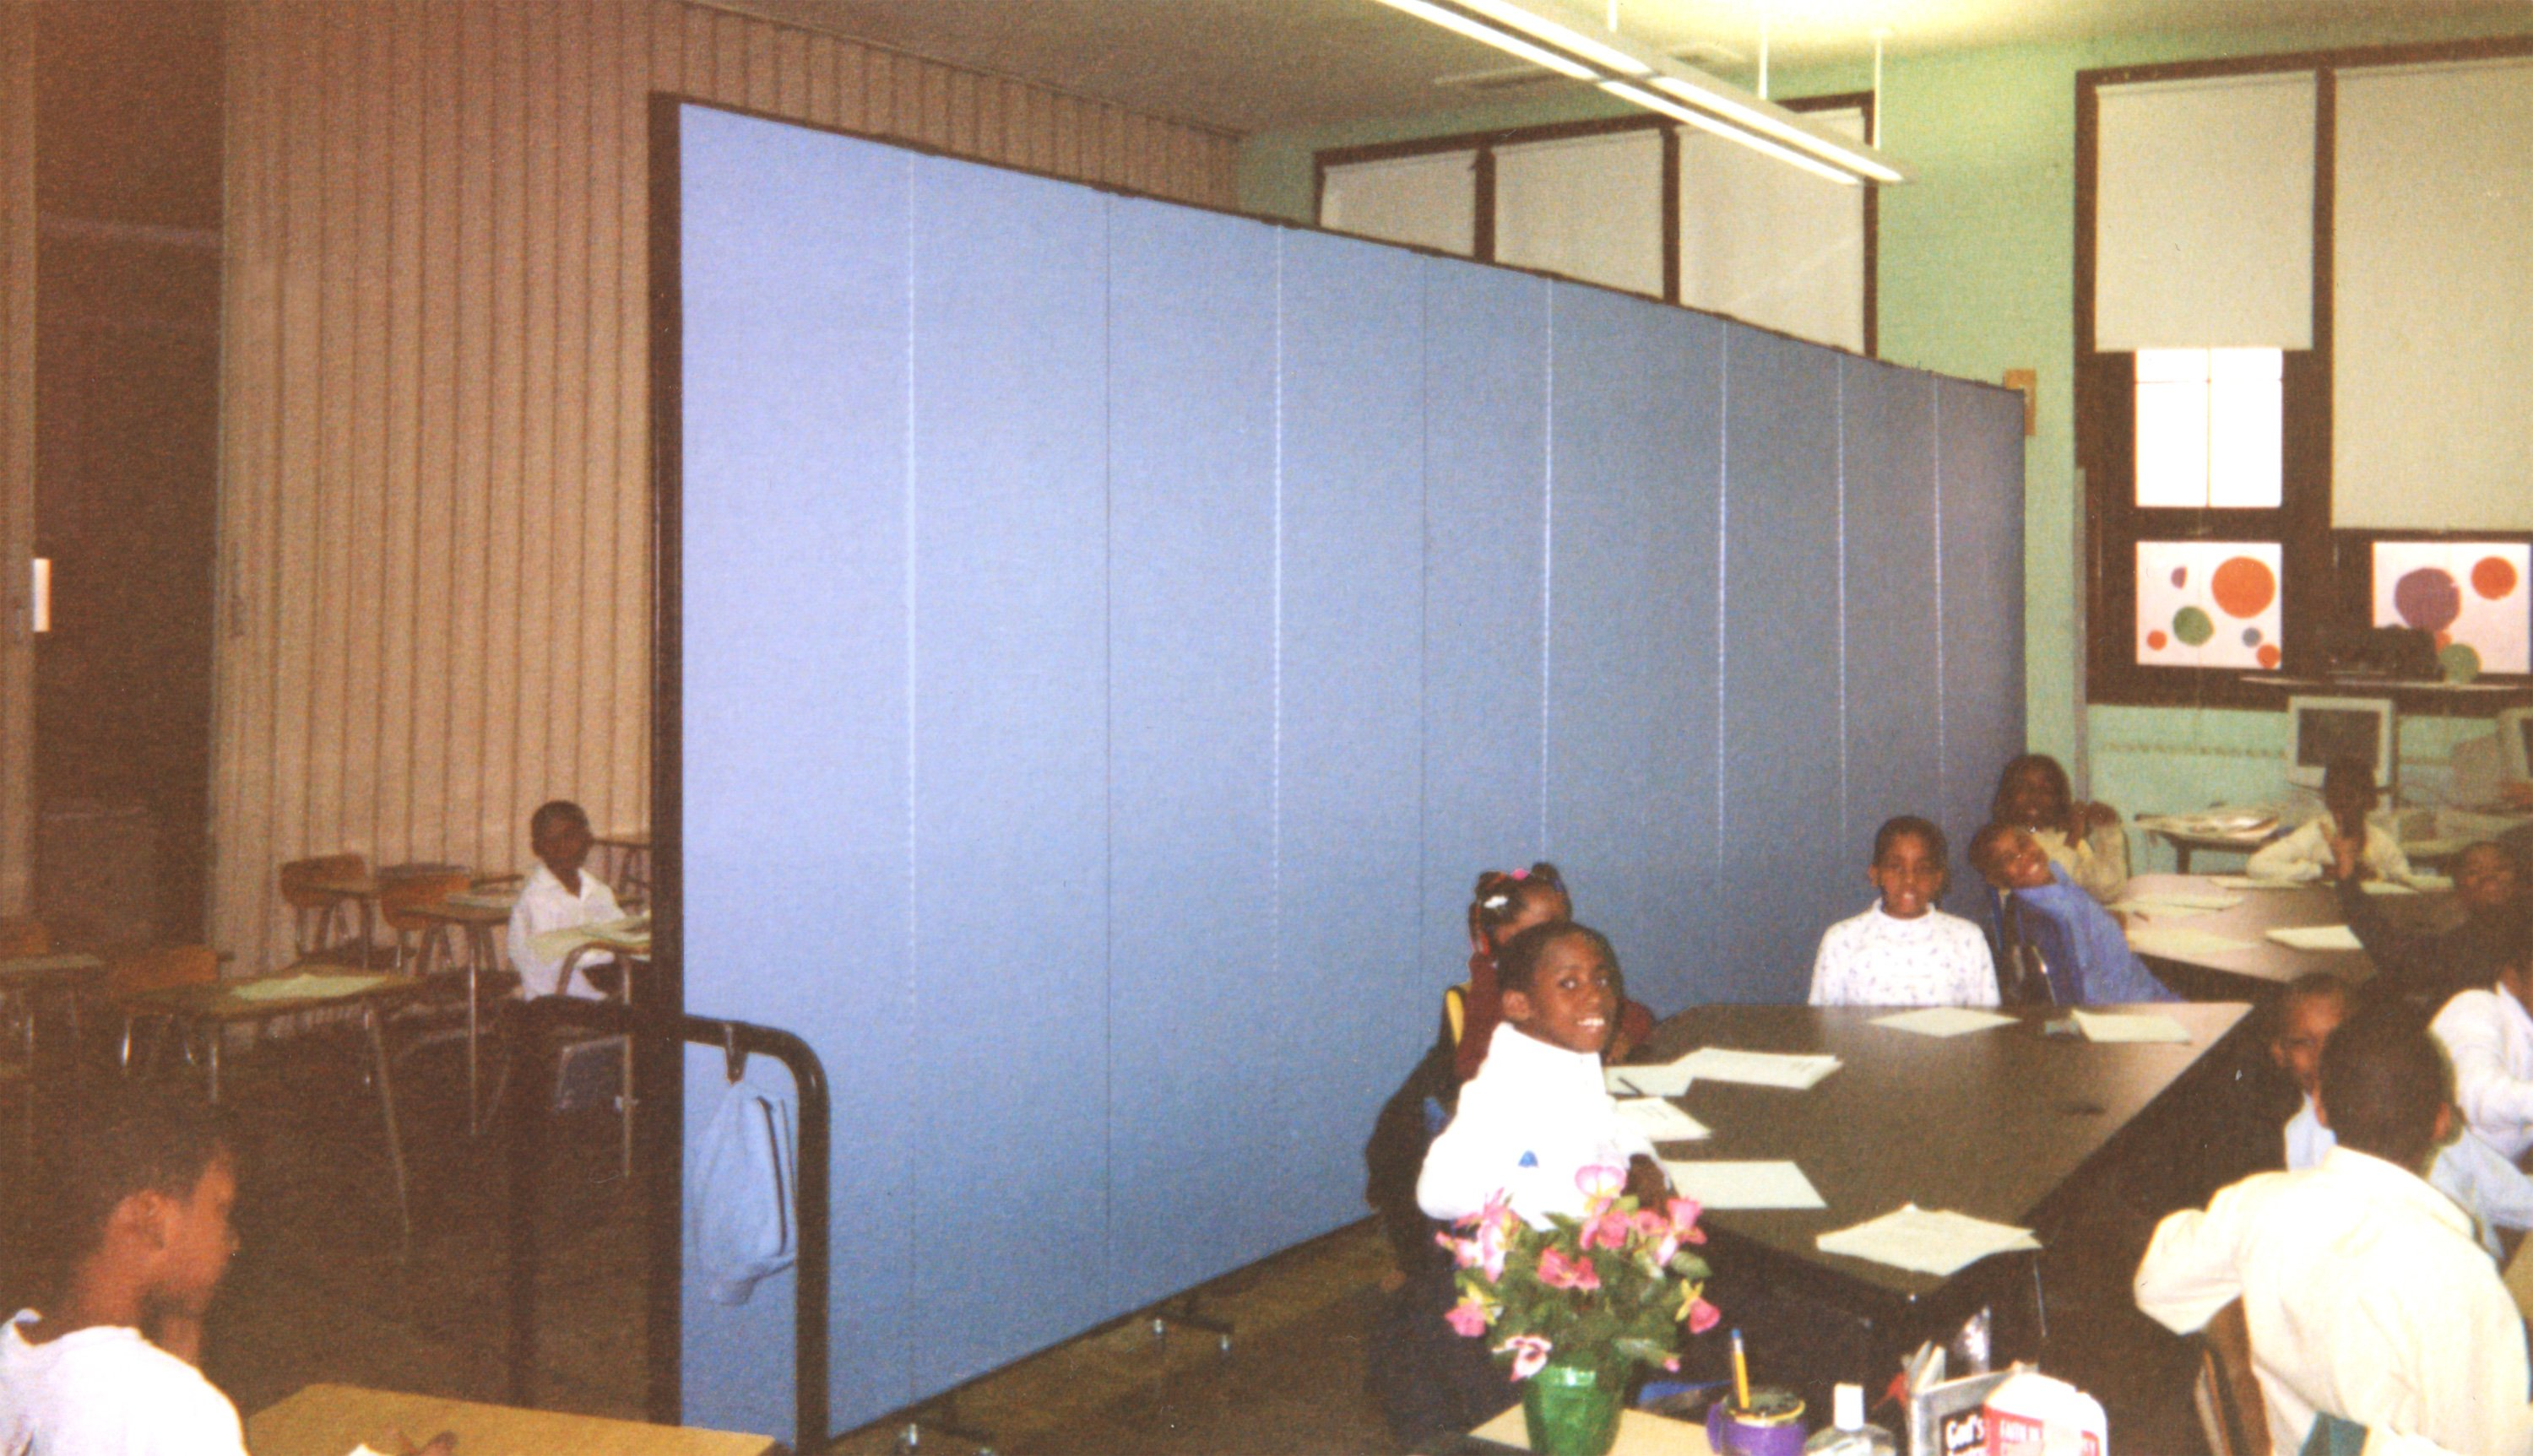 Acoustical Wallmount dividers help make the best use of space in overcrowded schools